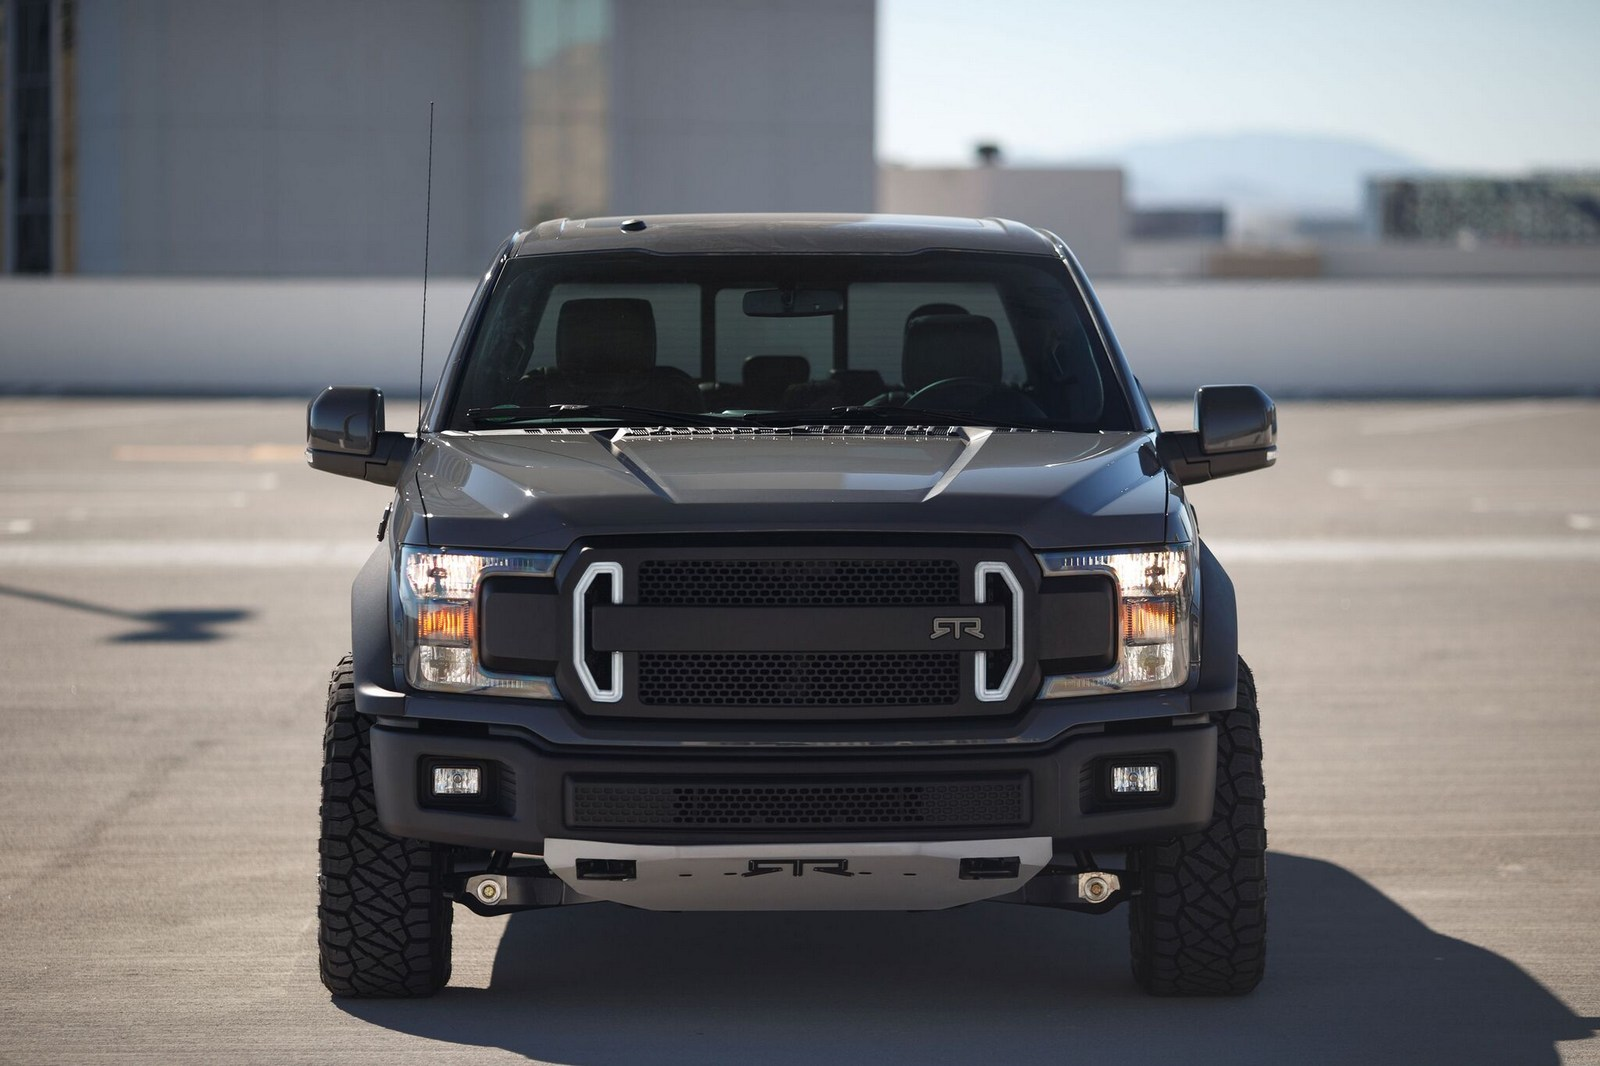 Ford_F-150_RTR_Muscle_Truck_concept0003